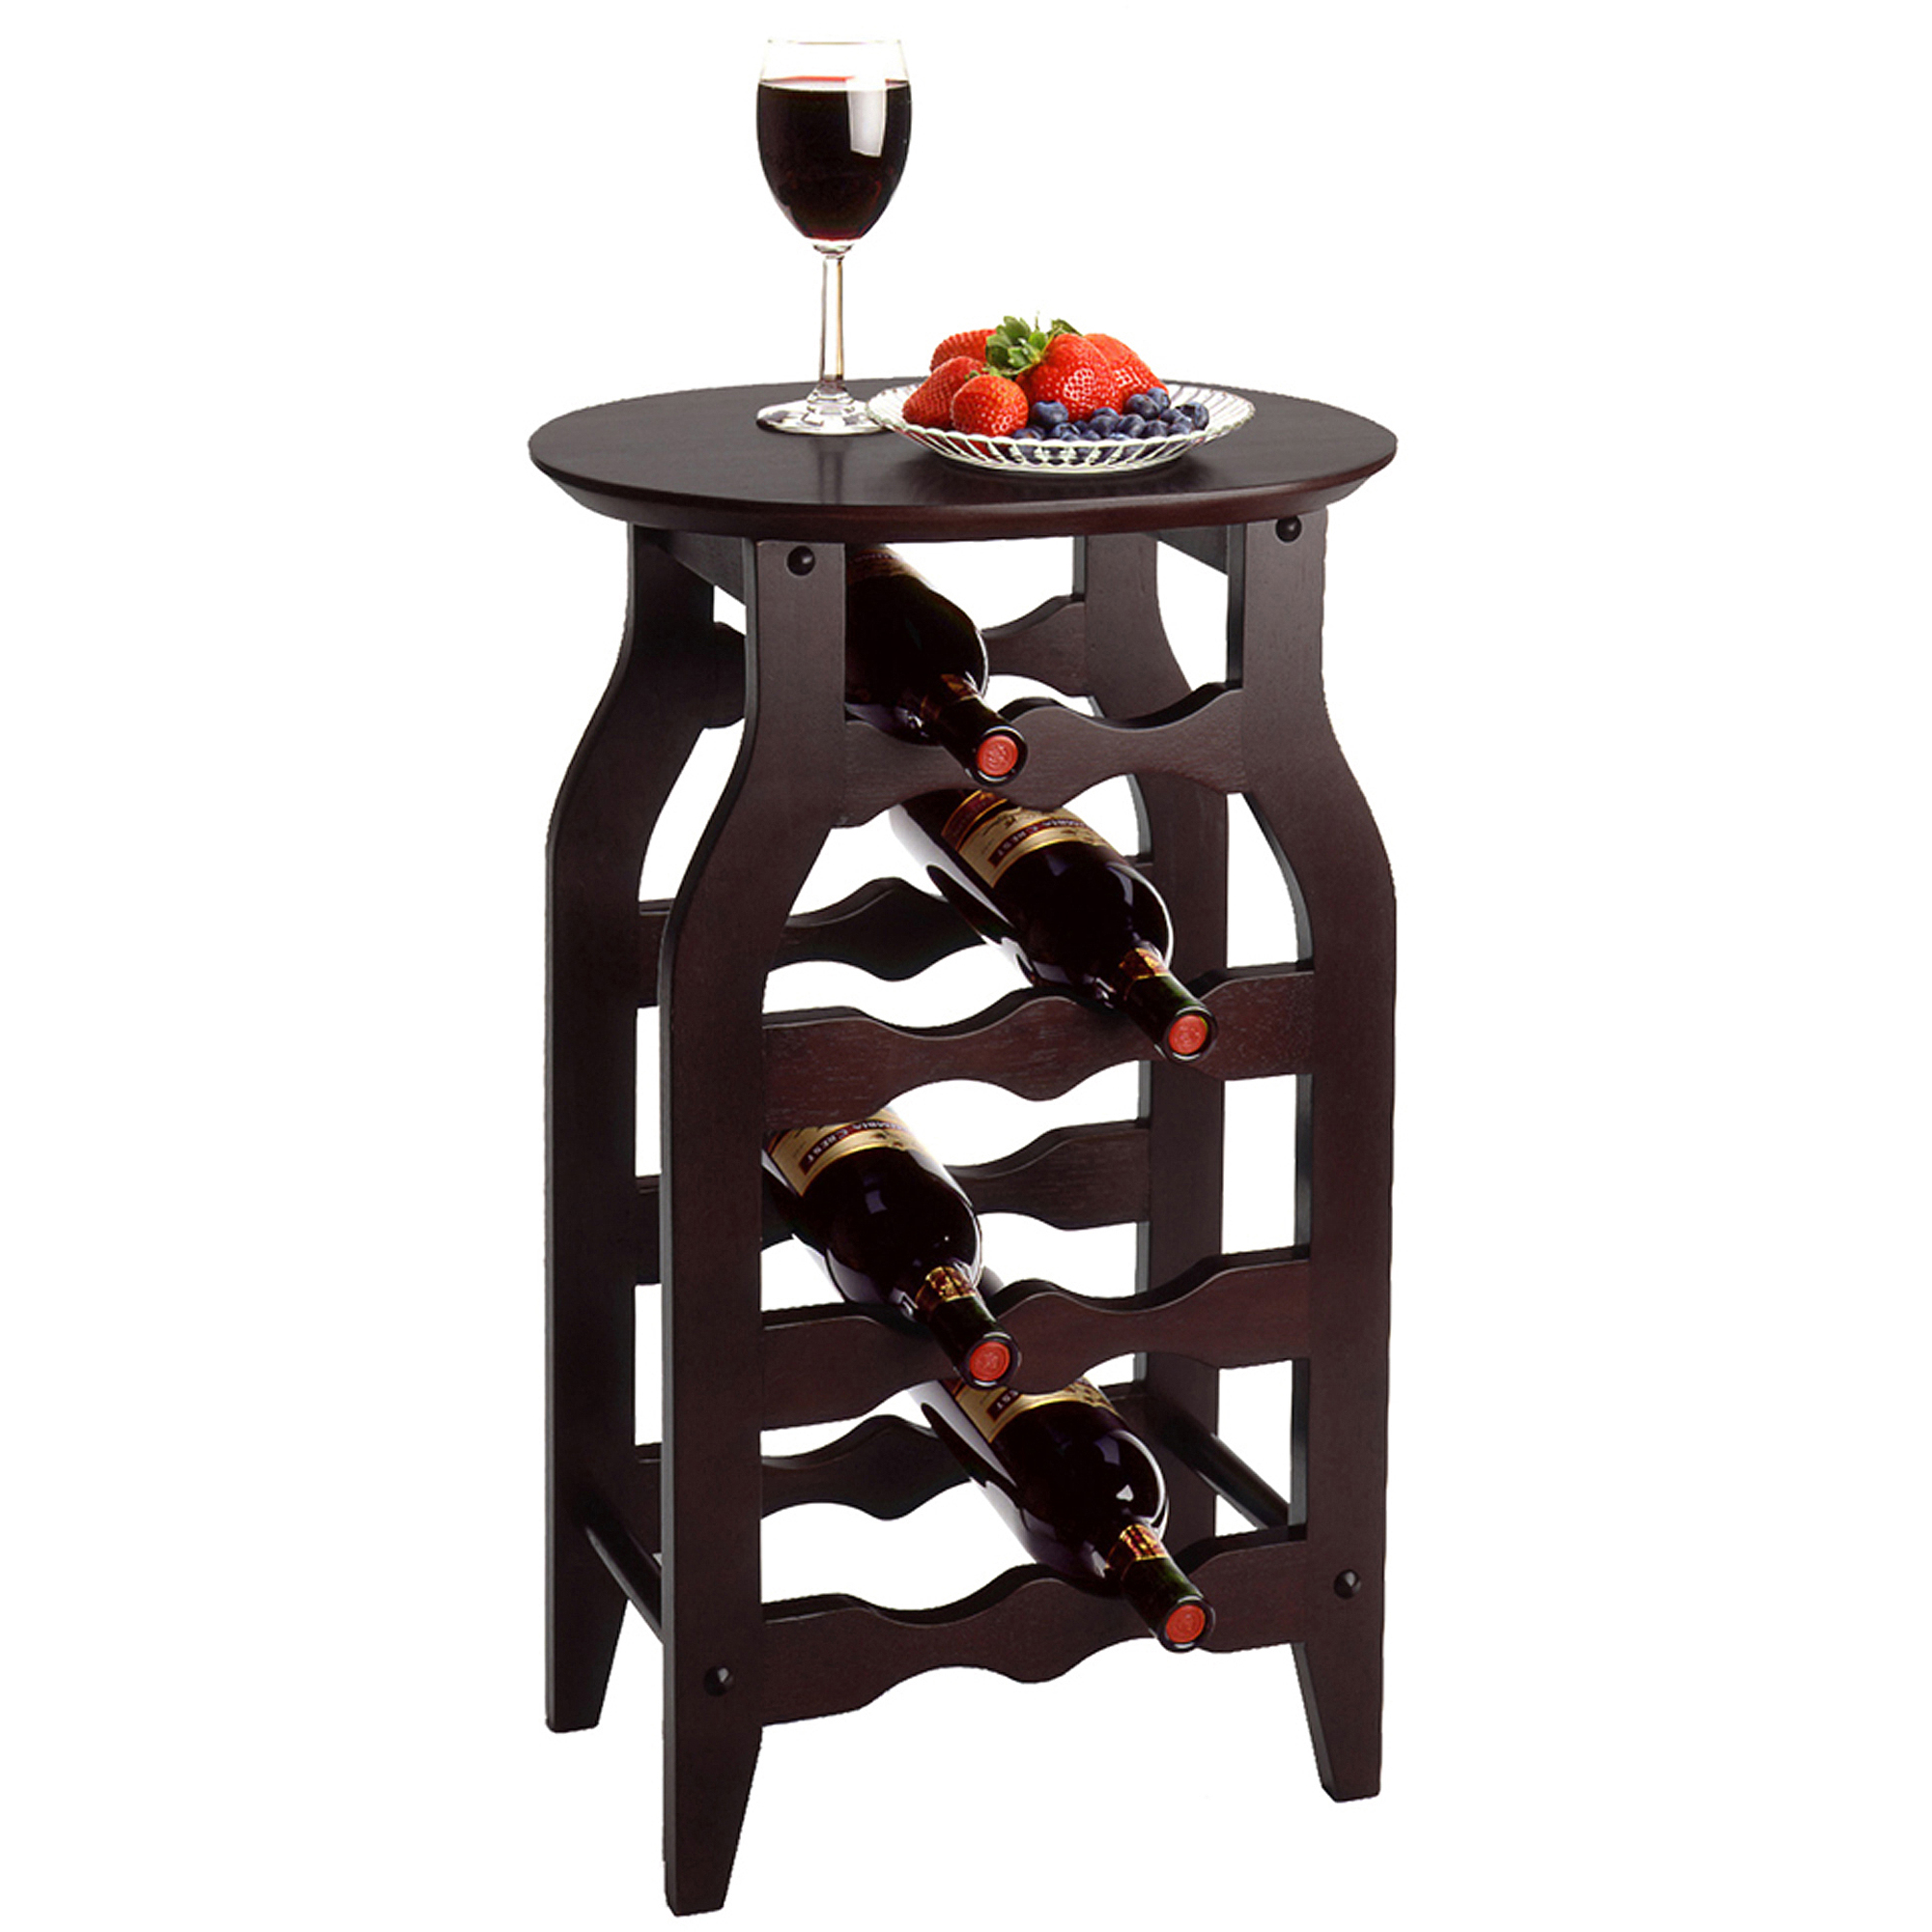 Solid Wood 8-Bottle Wine Rack, Espresso